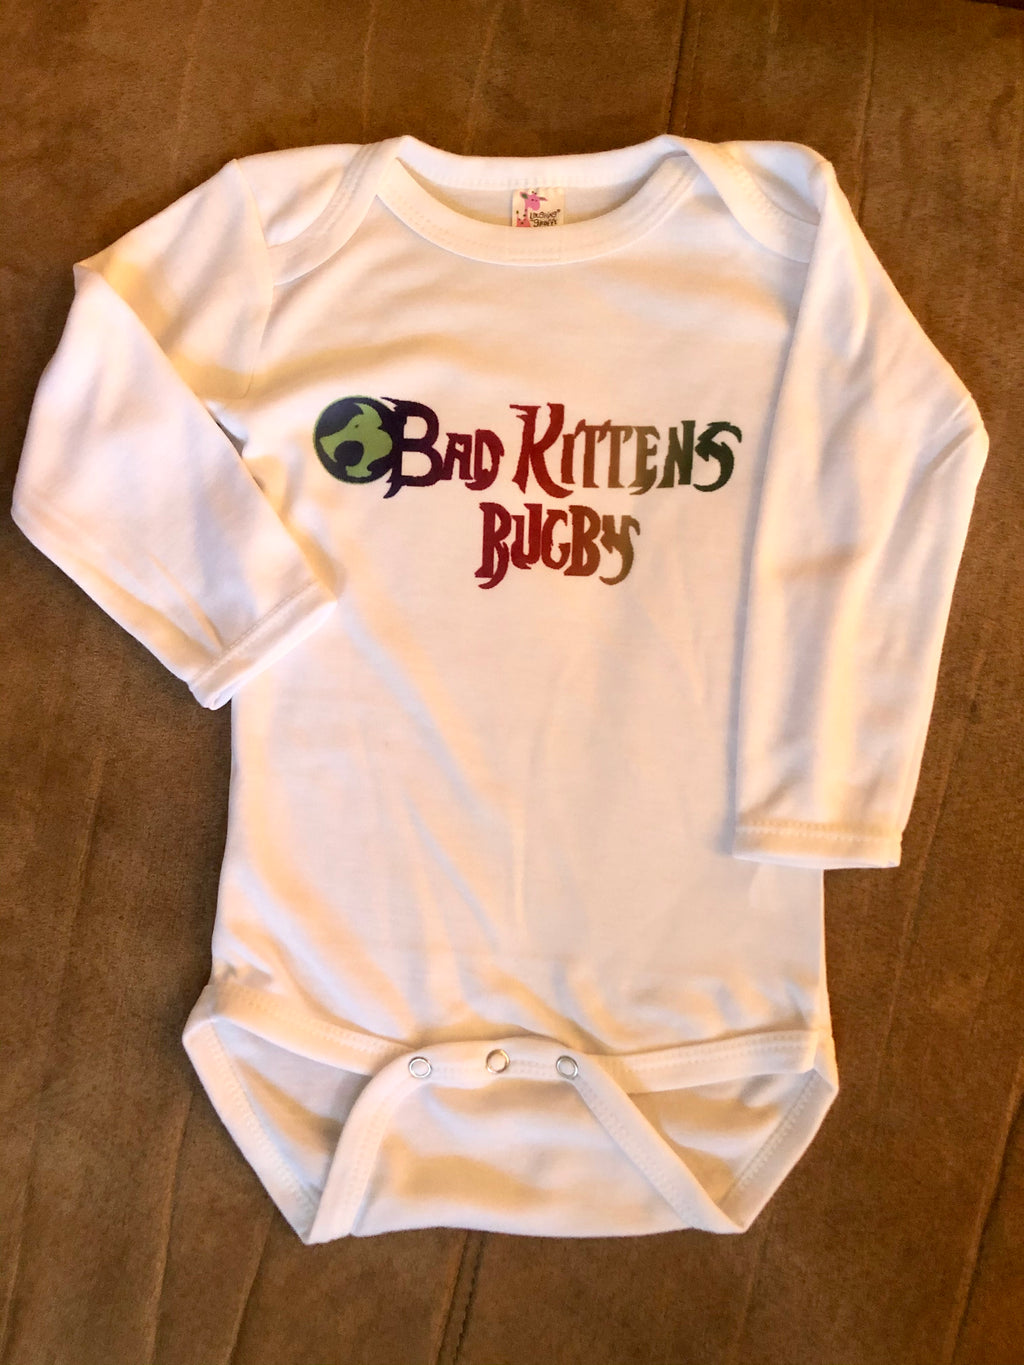 Bad Kittens Rugby Toddler Onesie